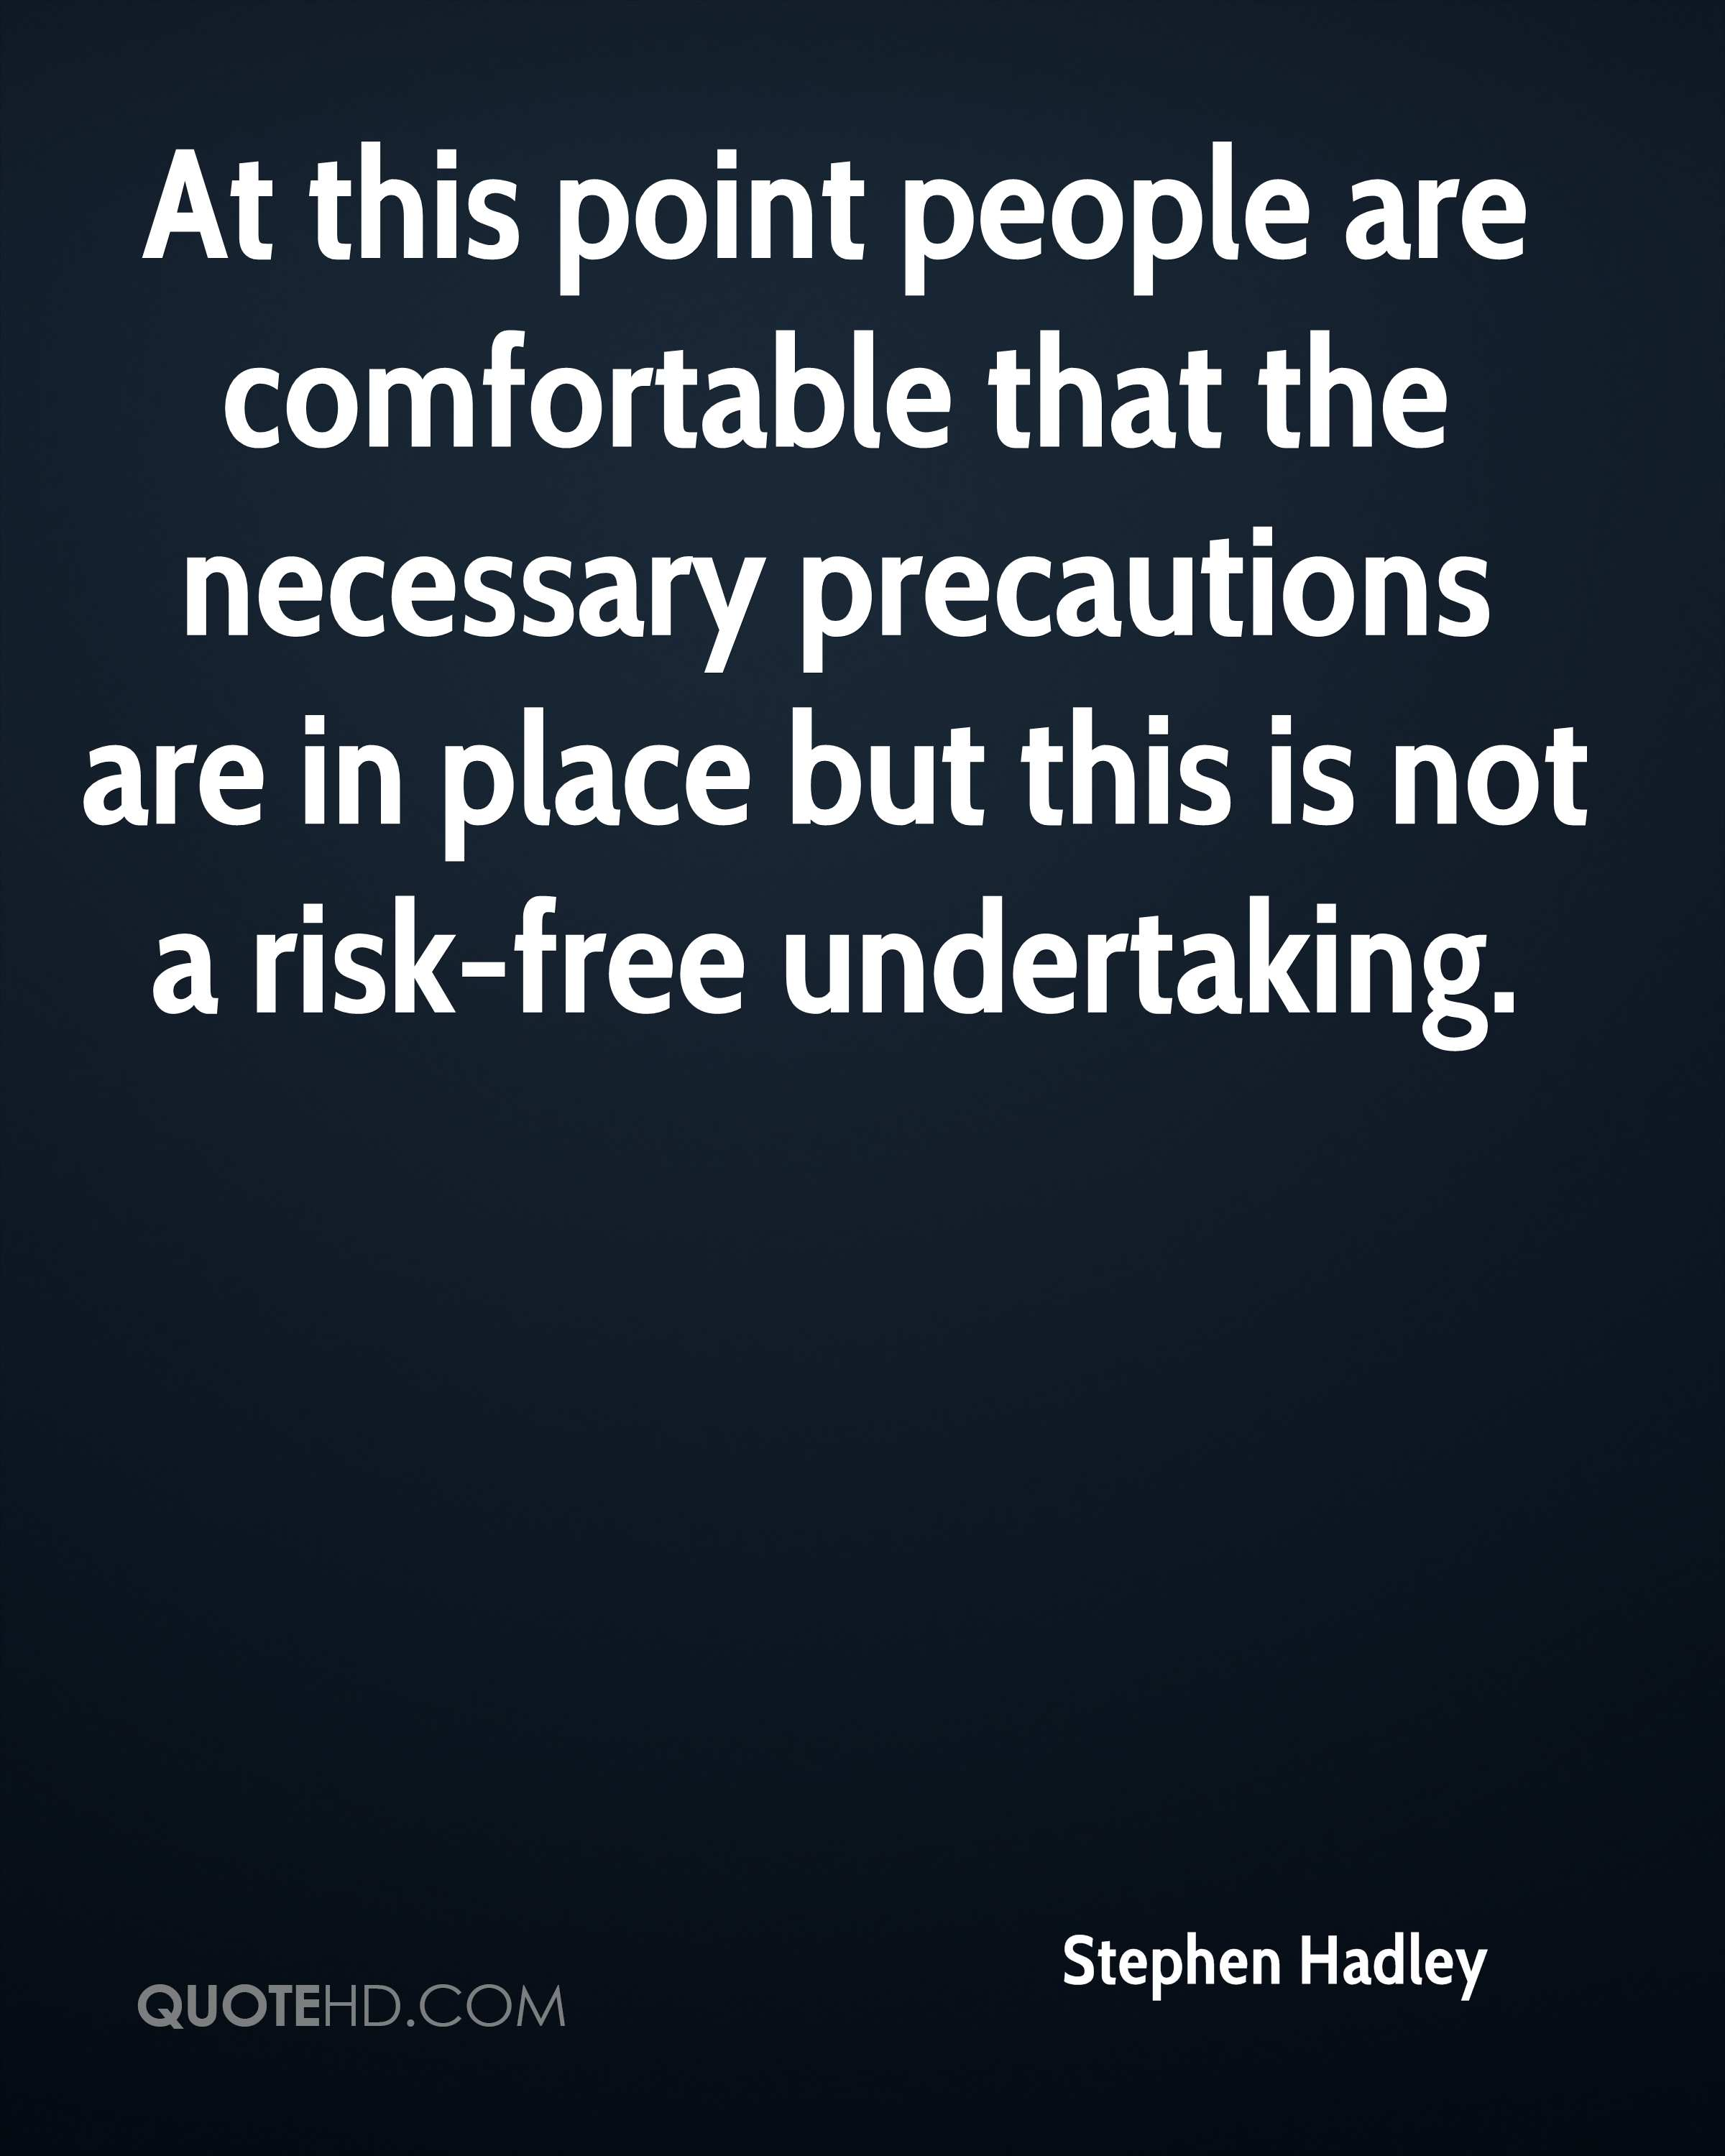 At this point people are comfortable that the necessary precautions are in place but this is not a risk-free undertaking.